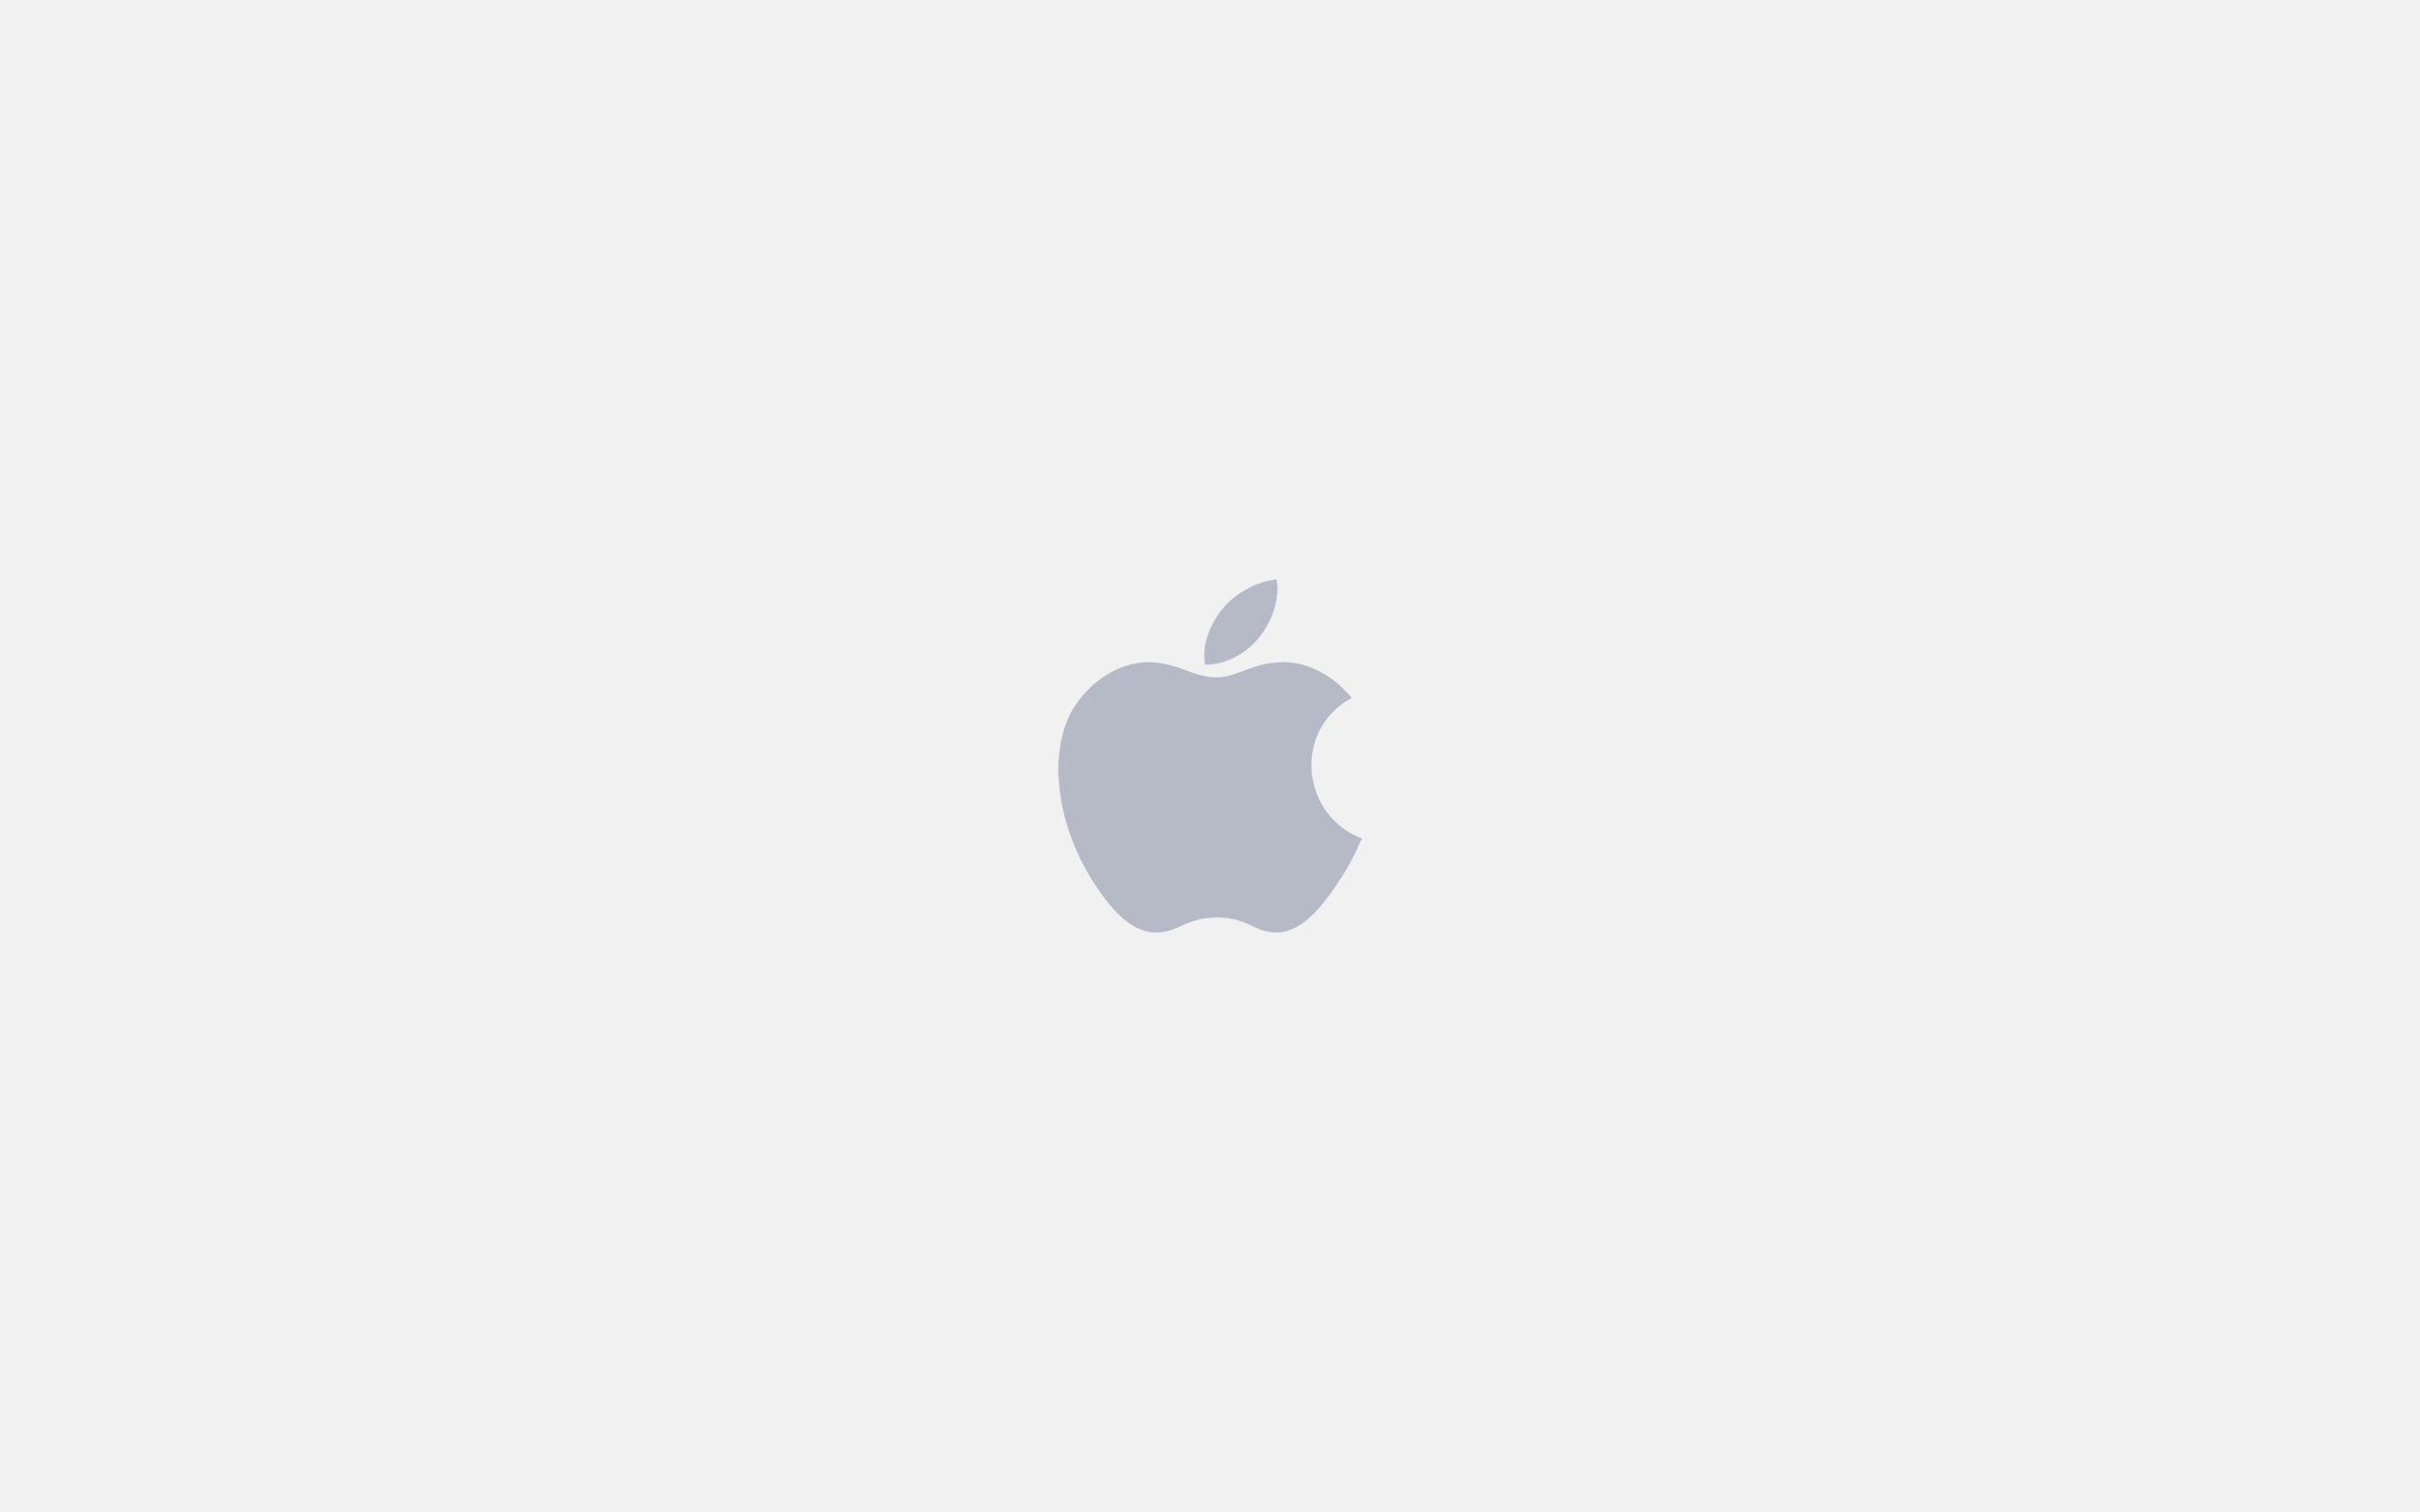 Minimal Apple Logo Wallpaper